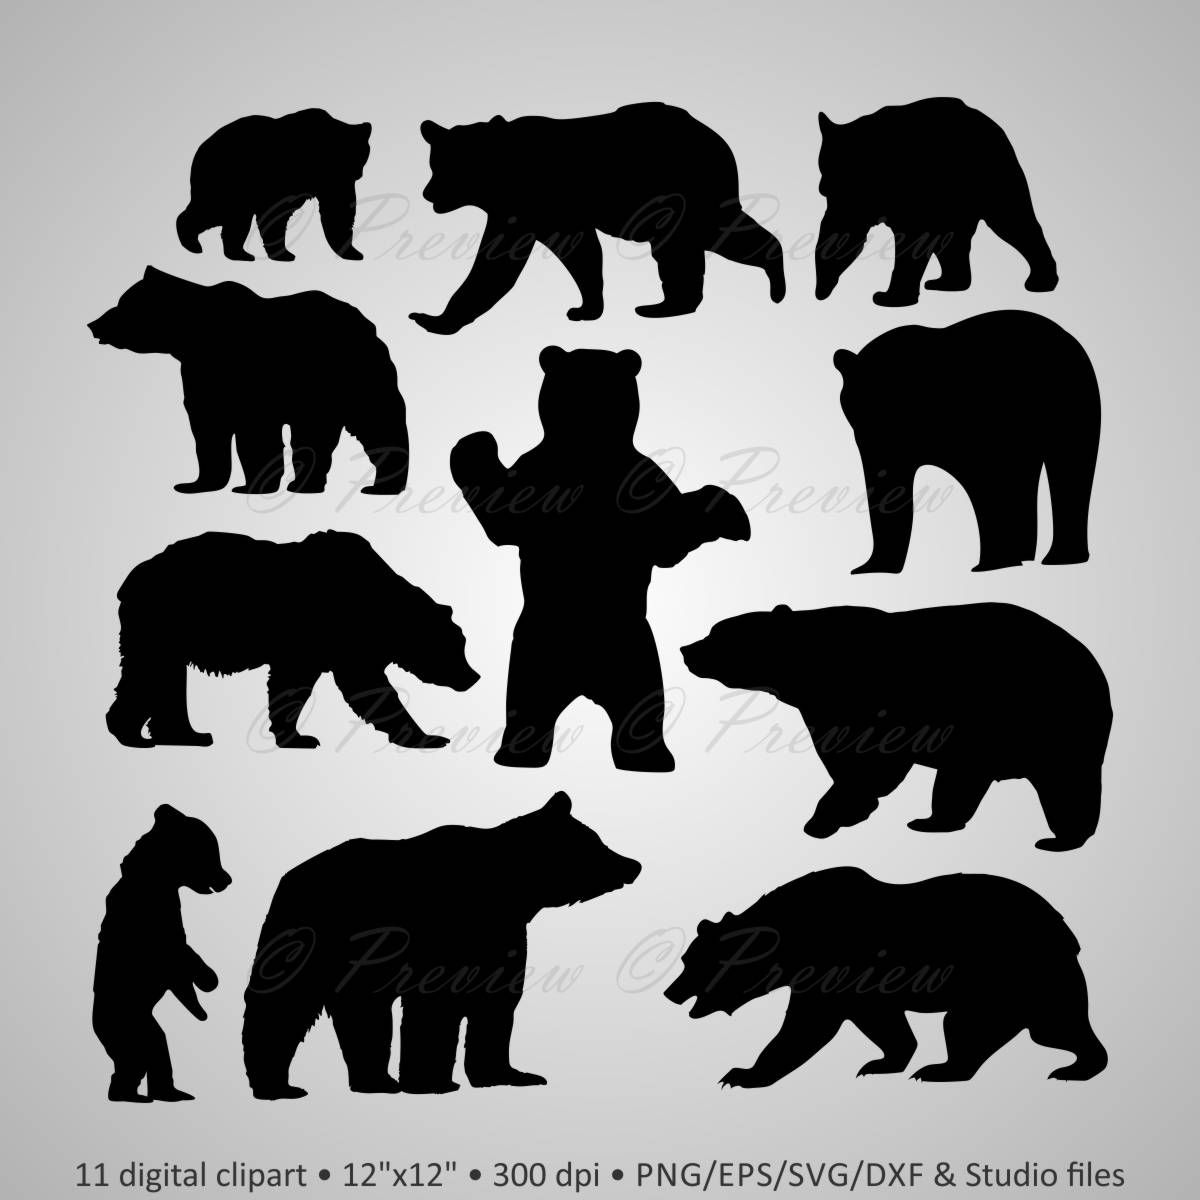 Buy 2 Get 1 Free! Digital Clipart Bear Silhouettes, forest wild ...